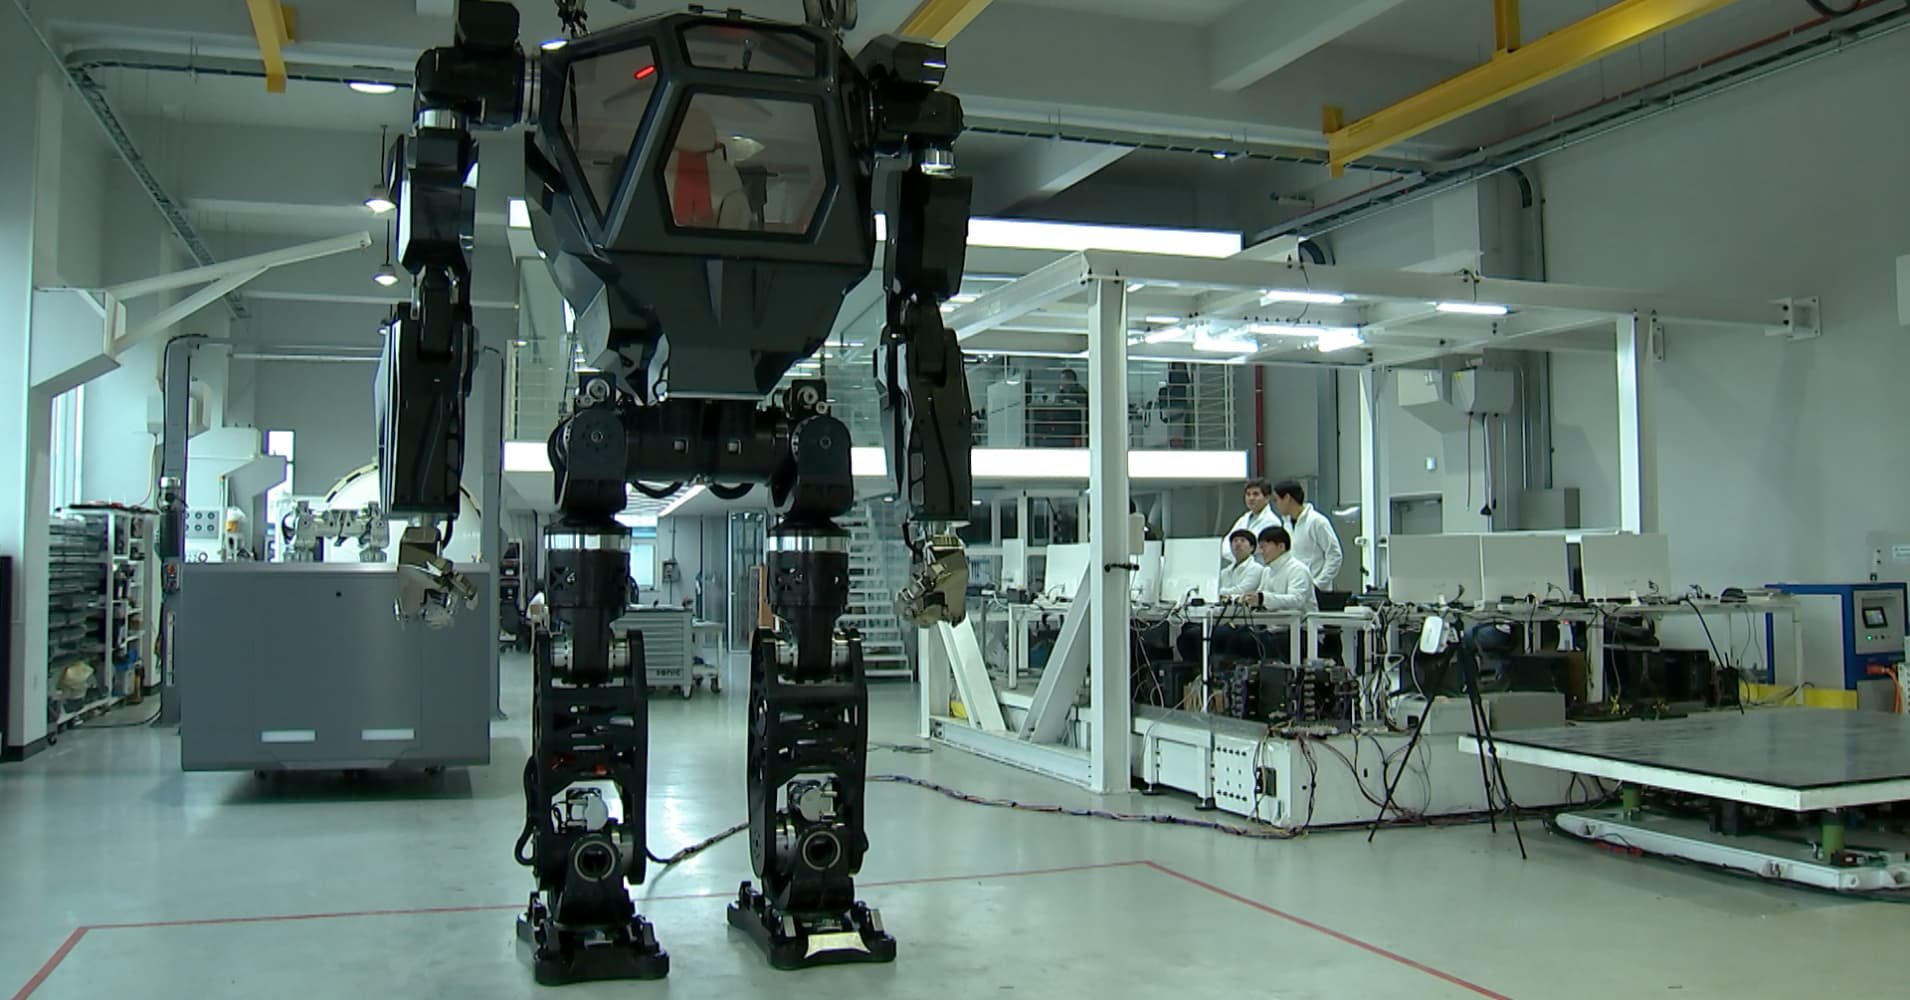 This 13-foot robot cost over $100 million to develop and looks like it's straight out of a sci-fi movie